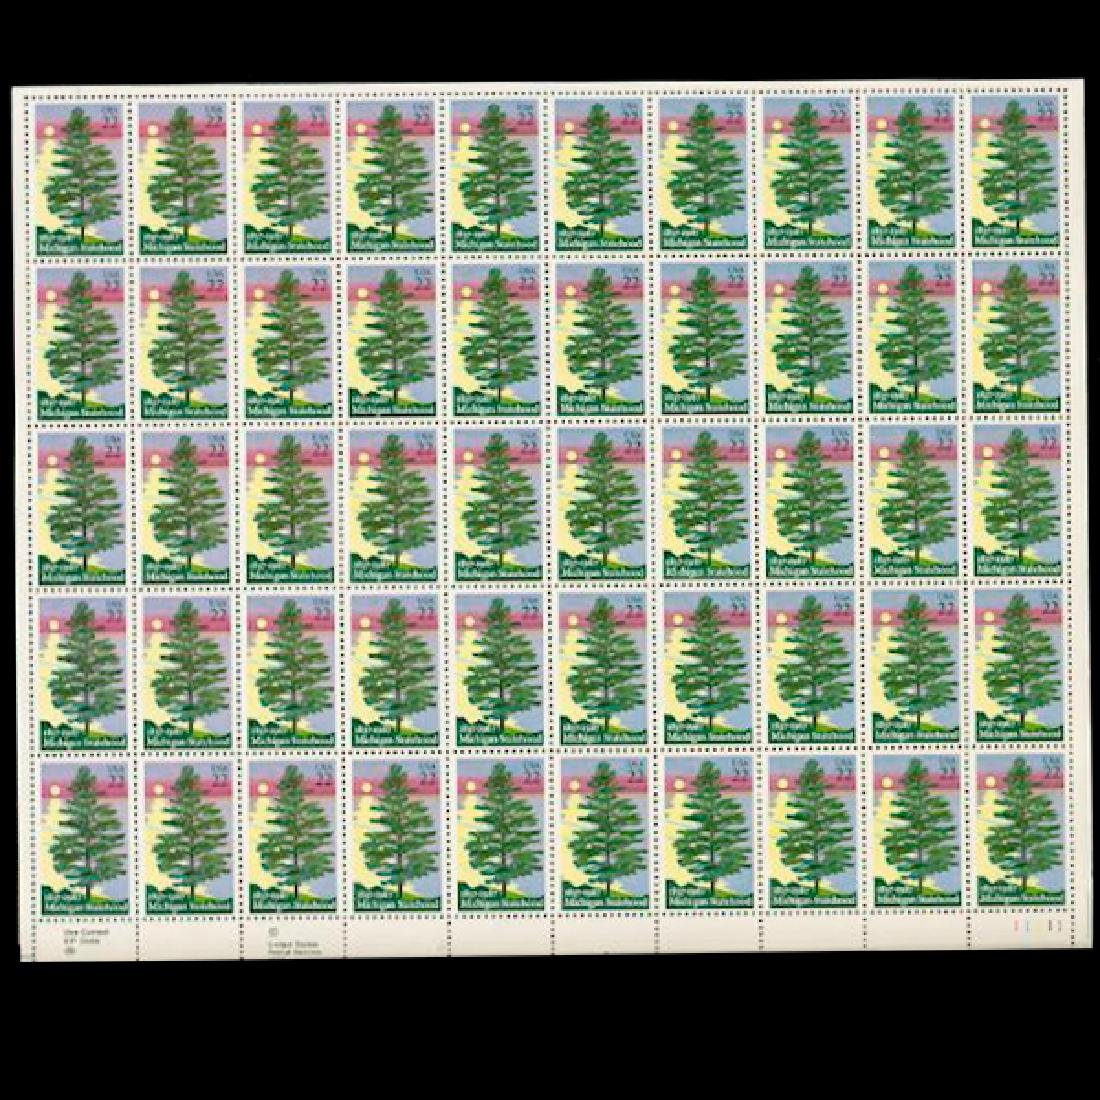 1987 US Sheet 22c Michigan Statehood Stamps MNH Error